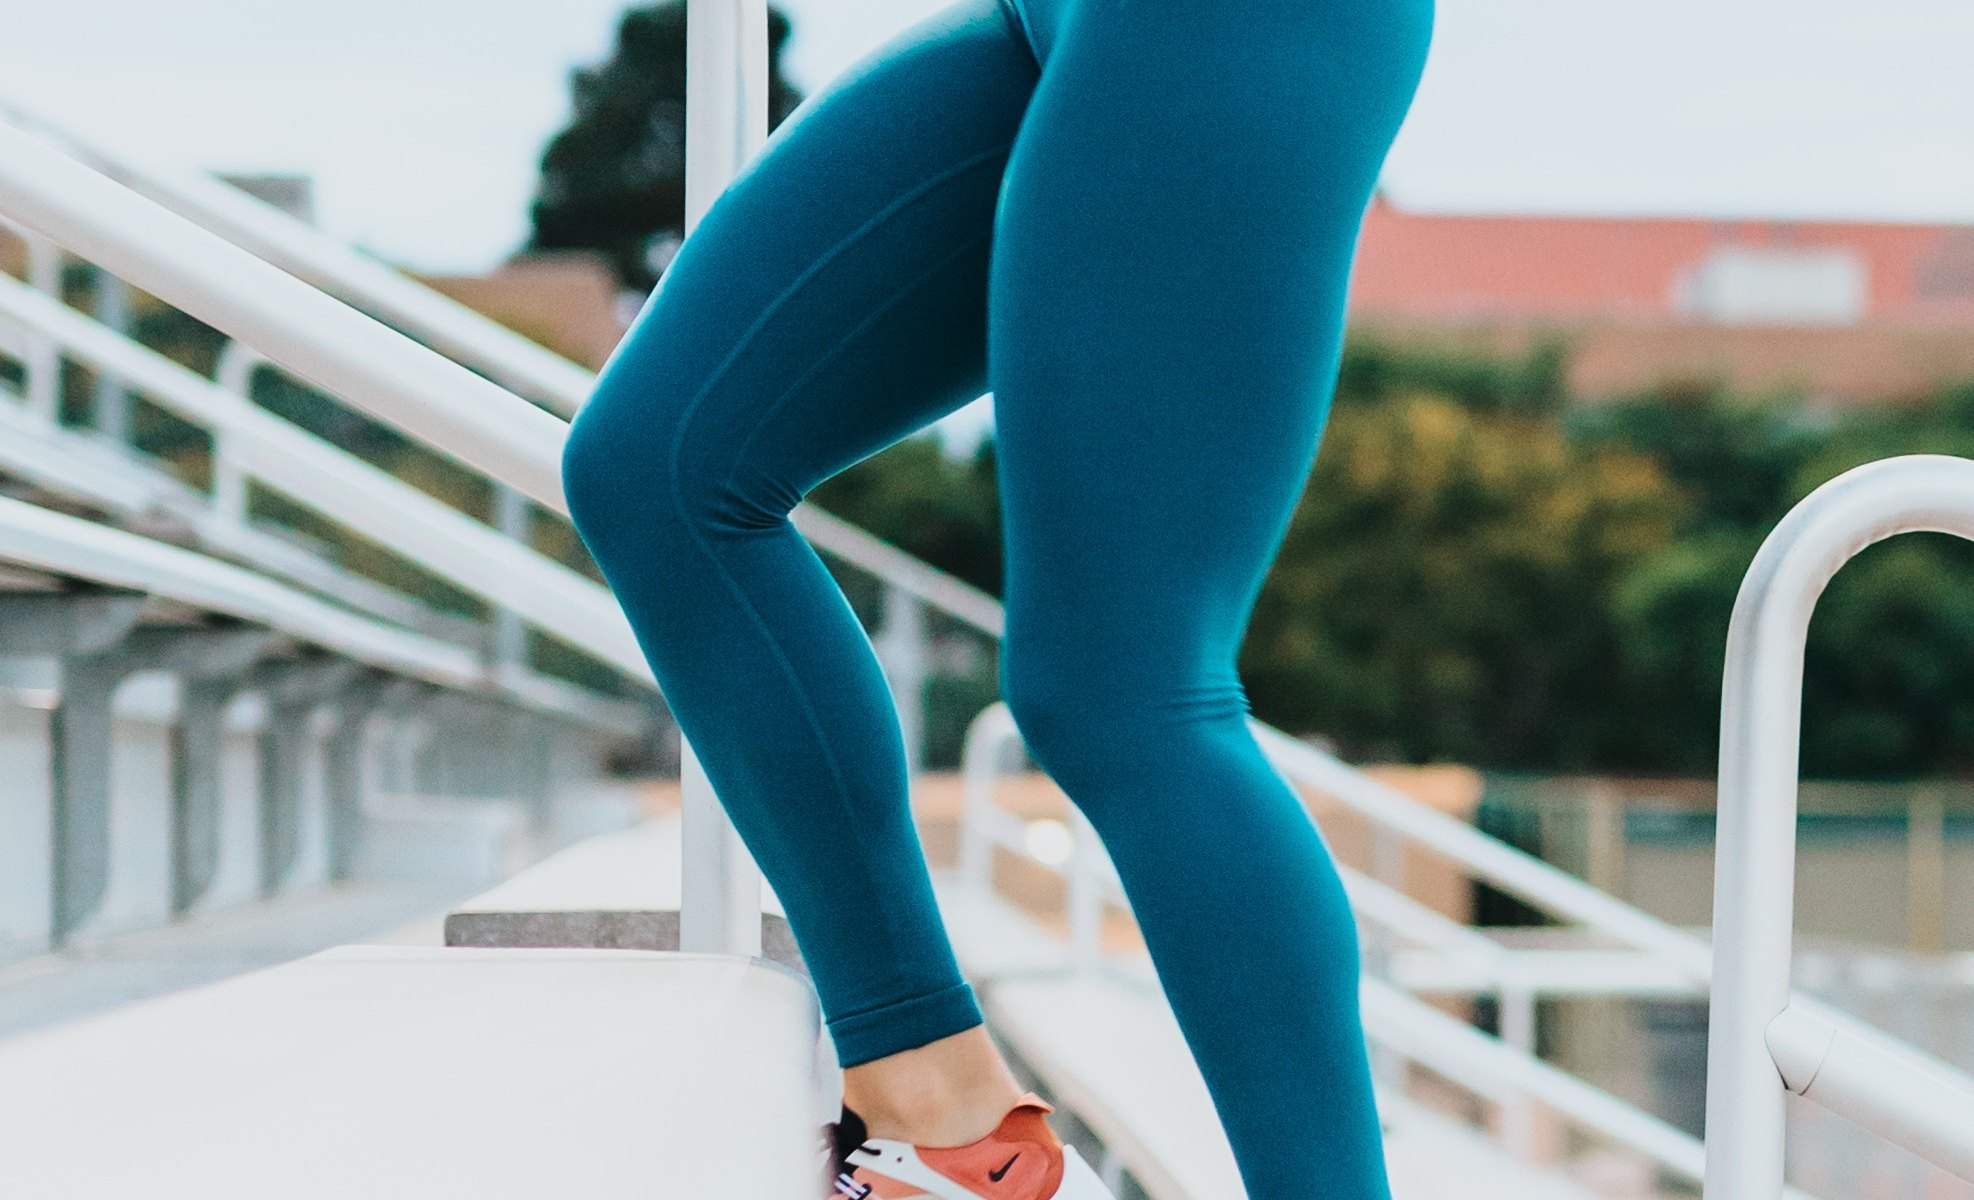 Attractive woman jogging on stadium bleachers in blue spandex